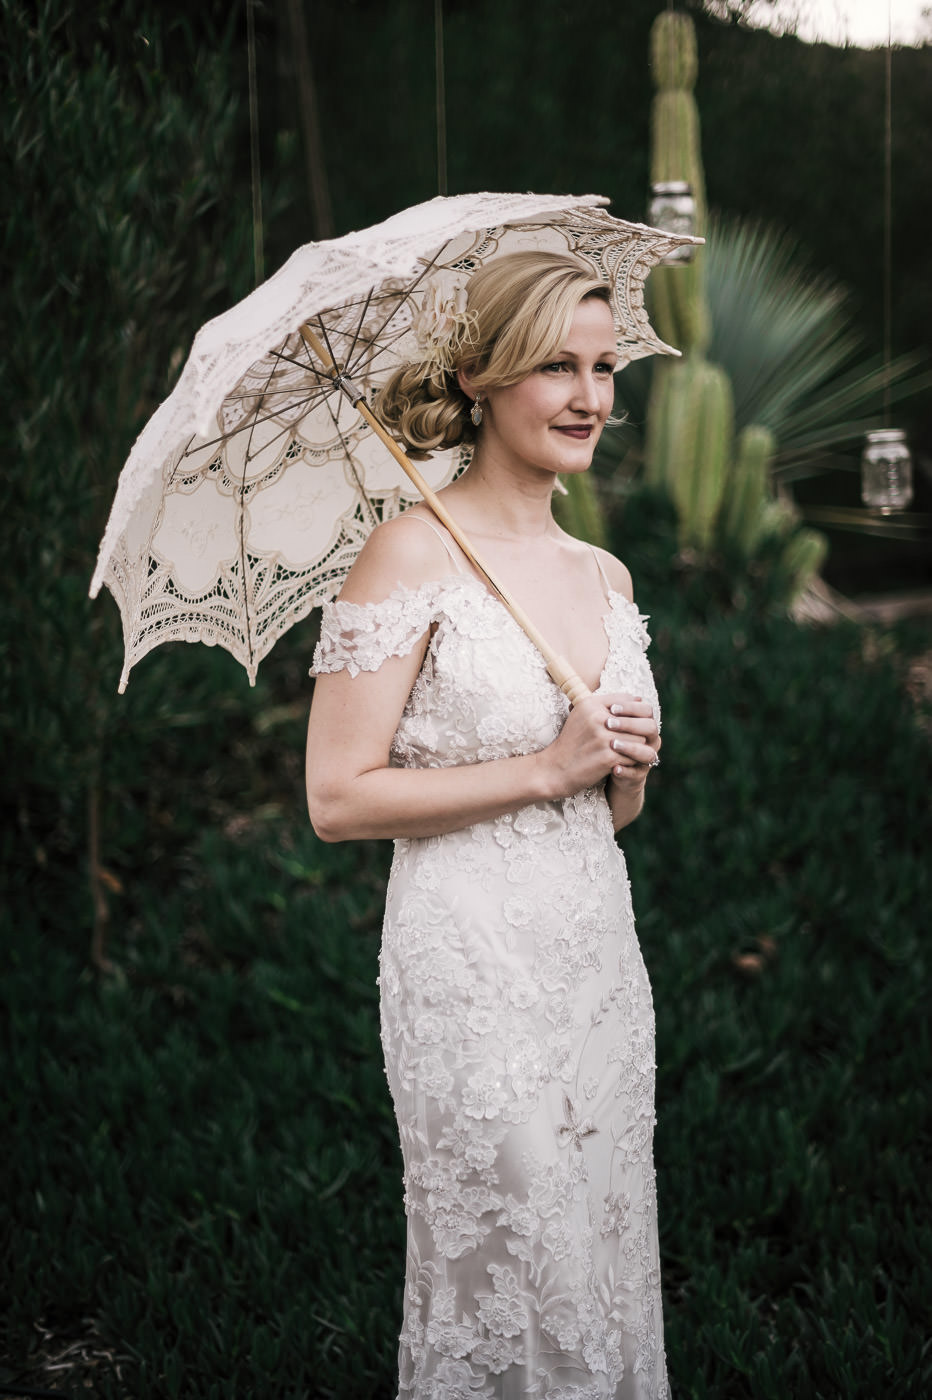 Temecula photographer captures gorgeous vintage themed bride holding a parasol before her ceremony at the rustic Whispering Oaks Terrace.